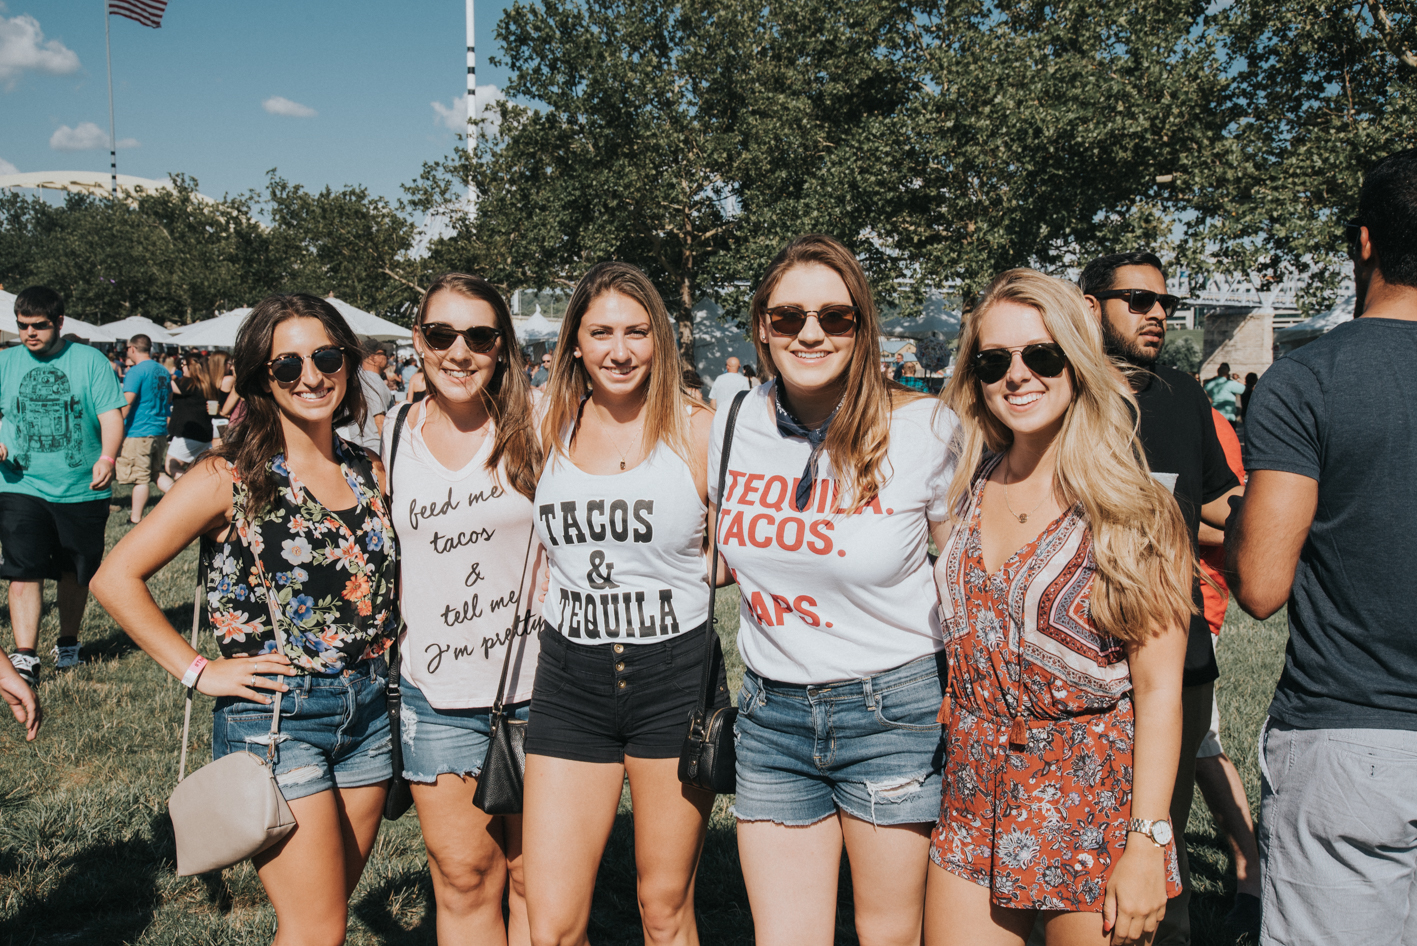 People: Julia Mauro, Brie Kincaid, Madison Stout, Jennifer Garzinski, and Haley Rubel / Event: Taco Festival at Yeatman's Cove (7.8.17) / Image: Brianna Long // Published: 8.1.17